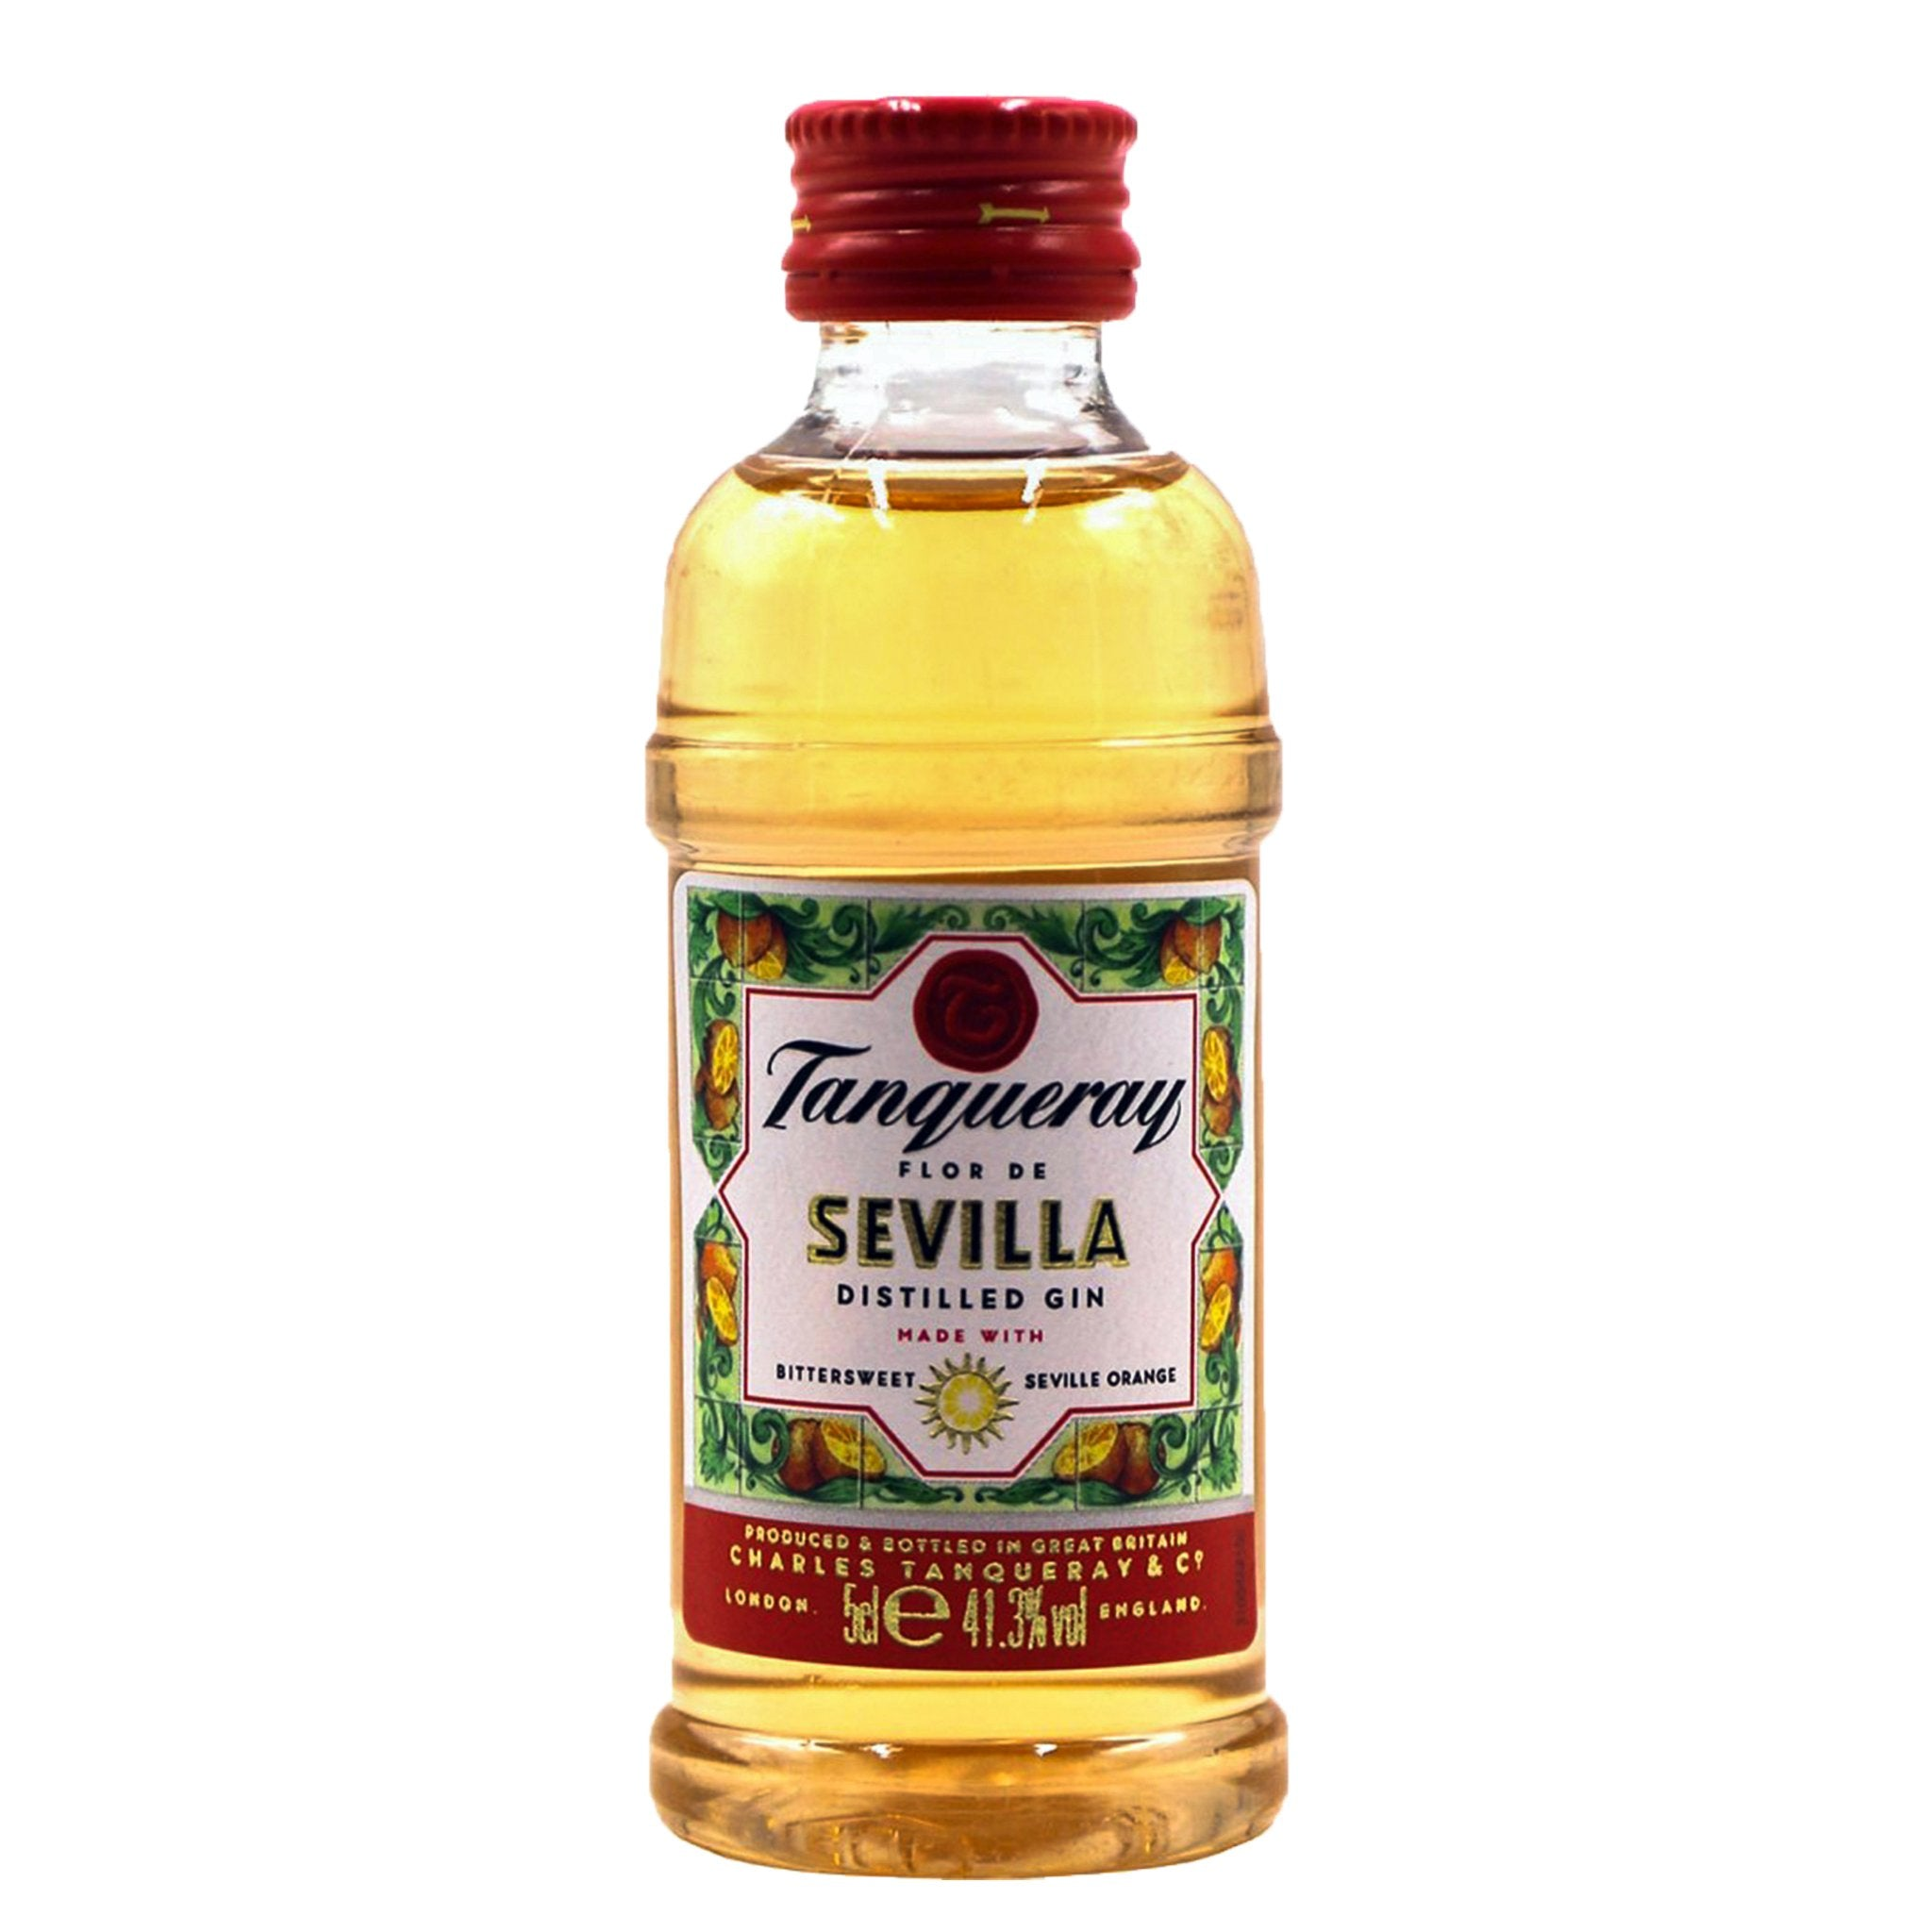 Tanqueray Seville 5cl, Liquor & Spirits by Drinks Shop